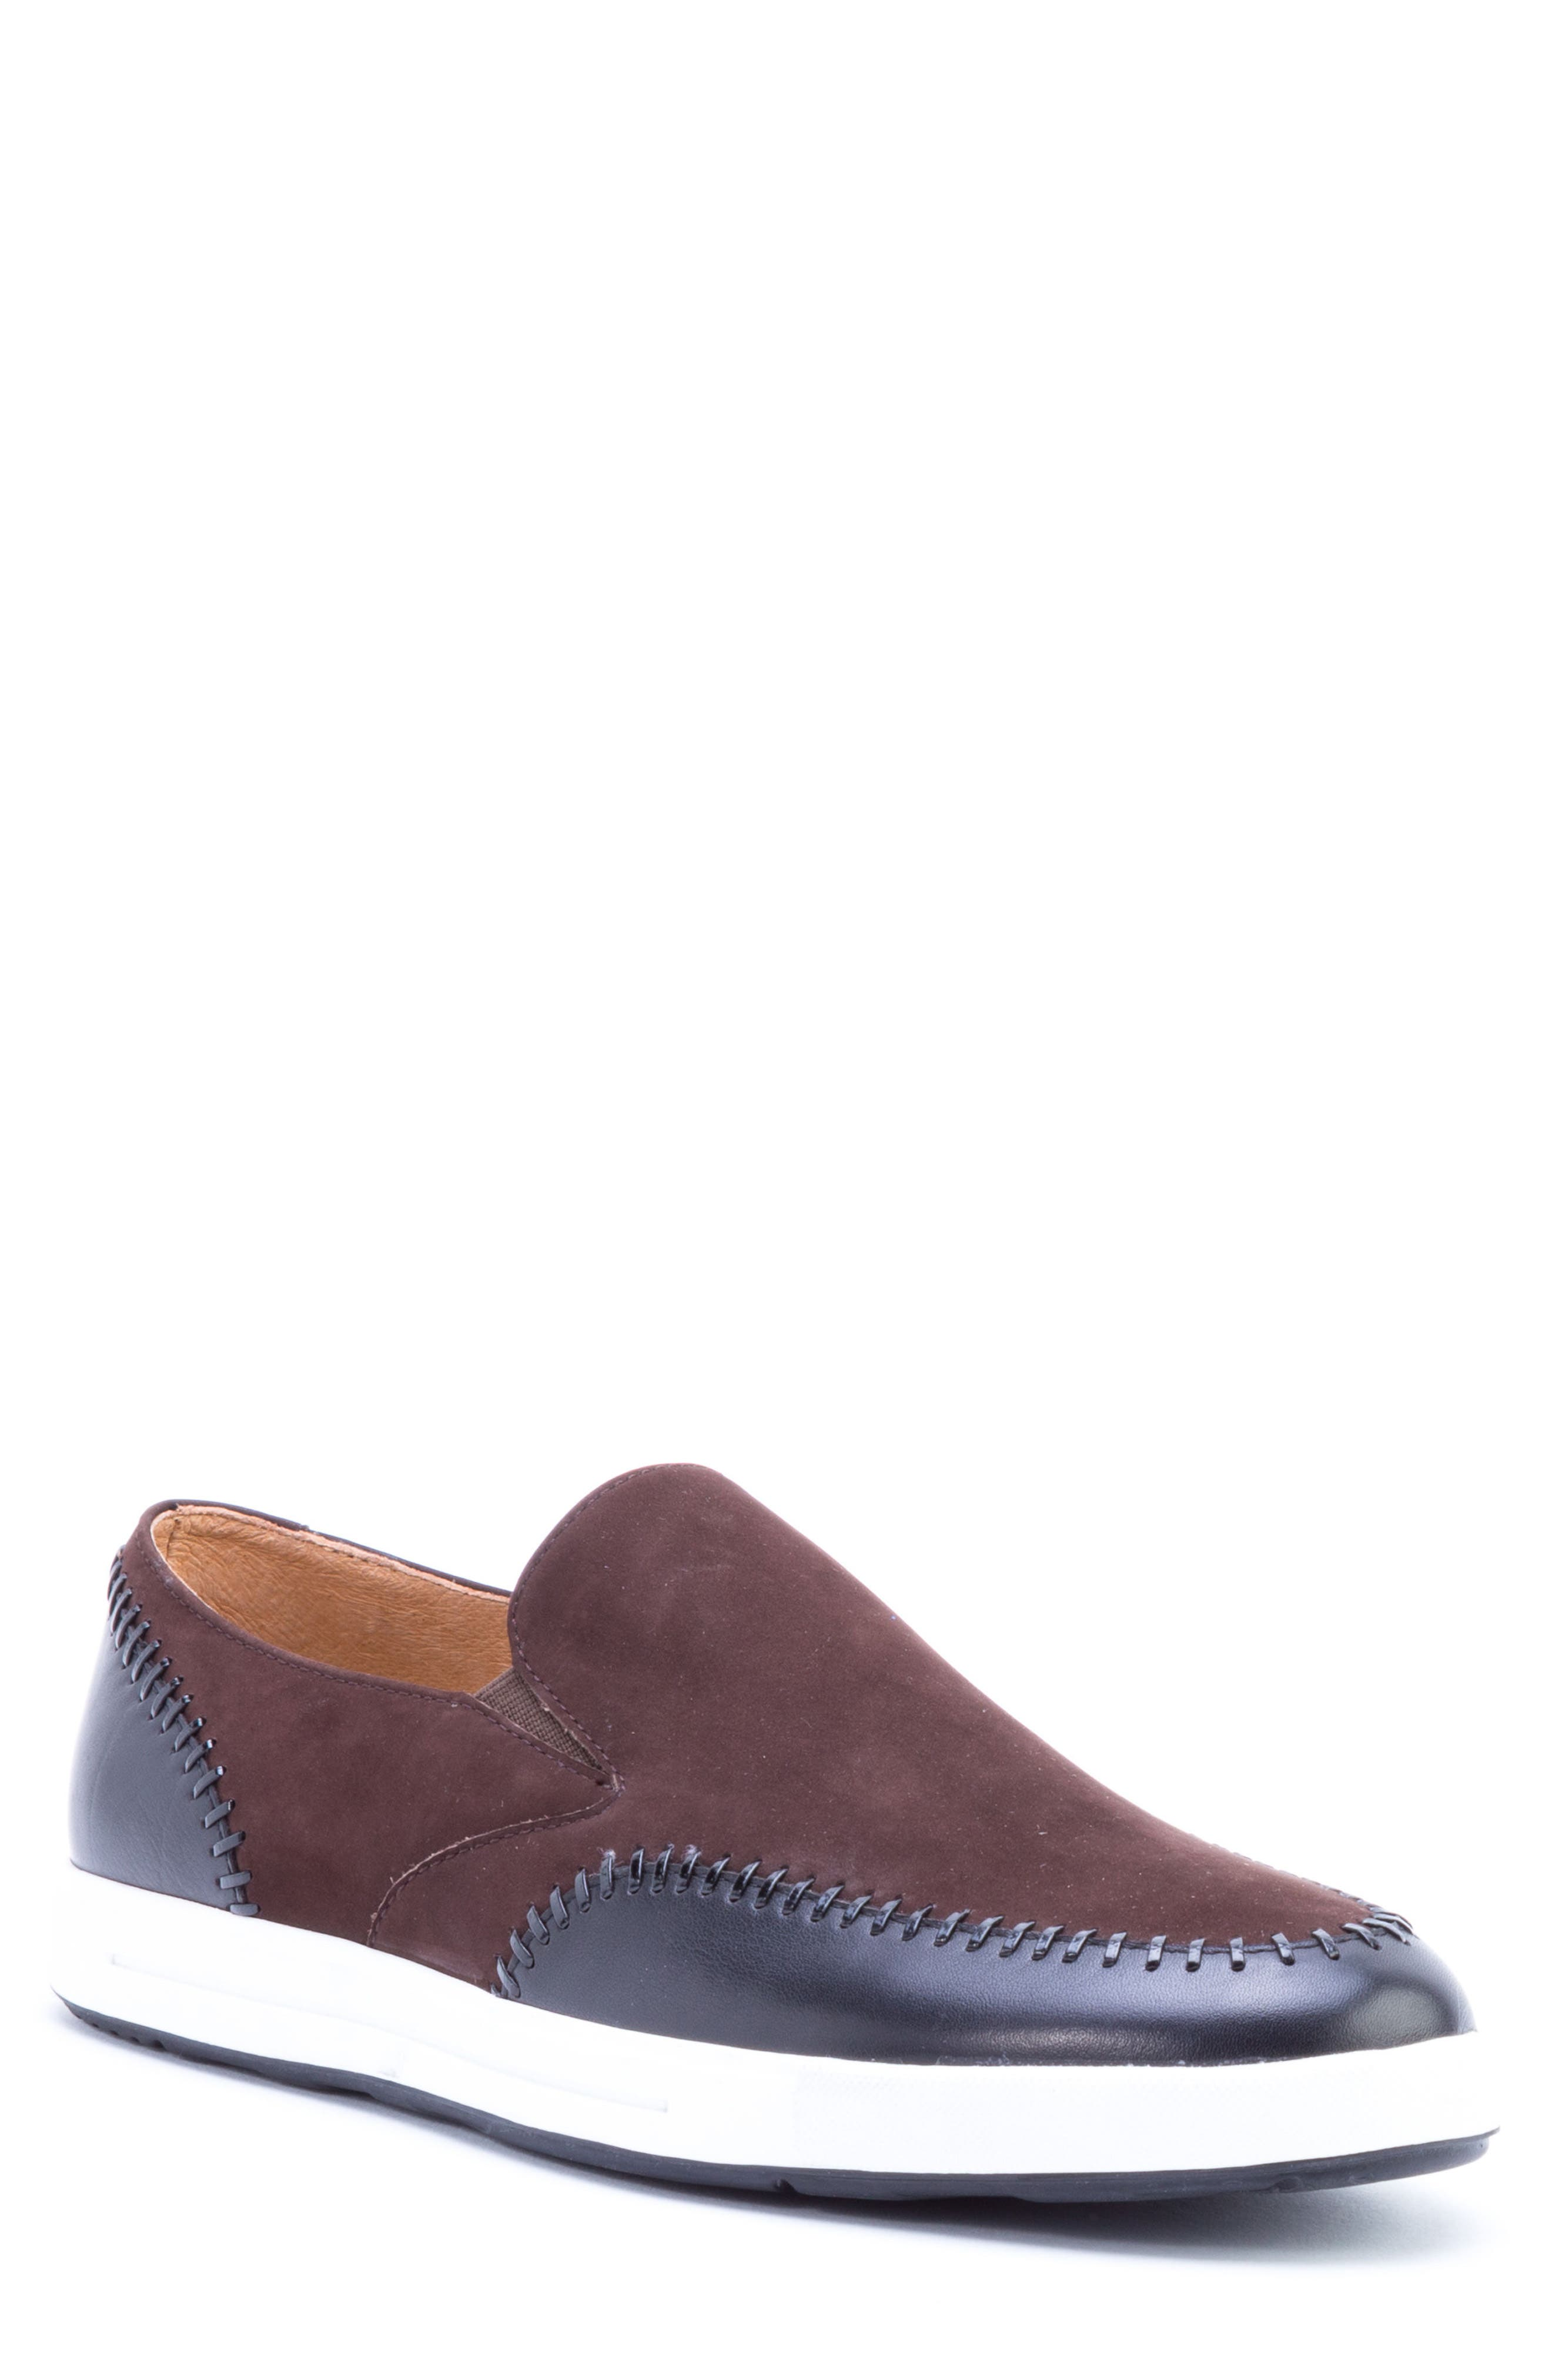 Caravaggio Whipstitched Slip-On Sneaker,                             Main thumbnail 1, color,                             BROWN SUEDE/ LEATHER